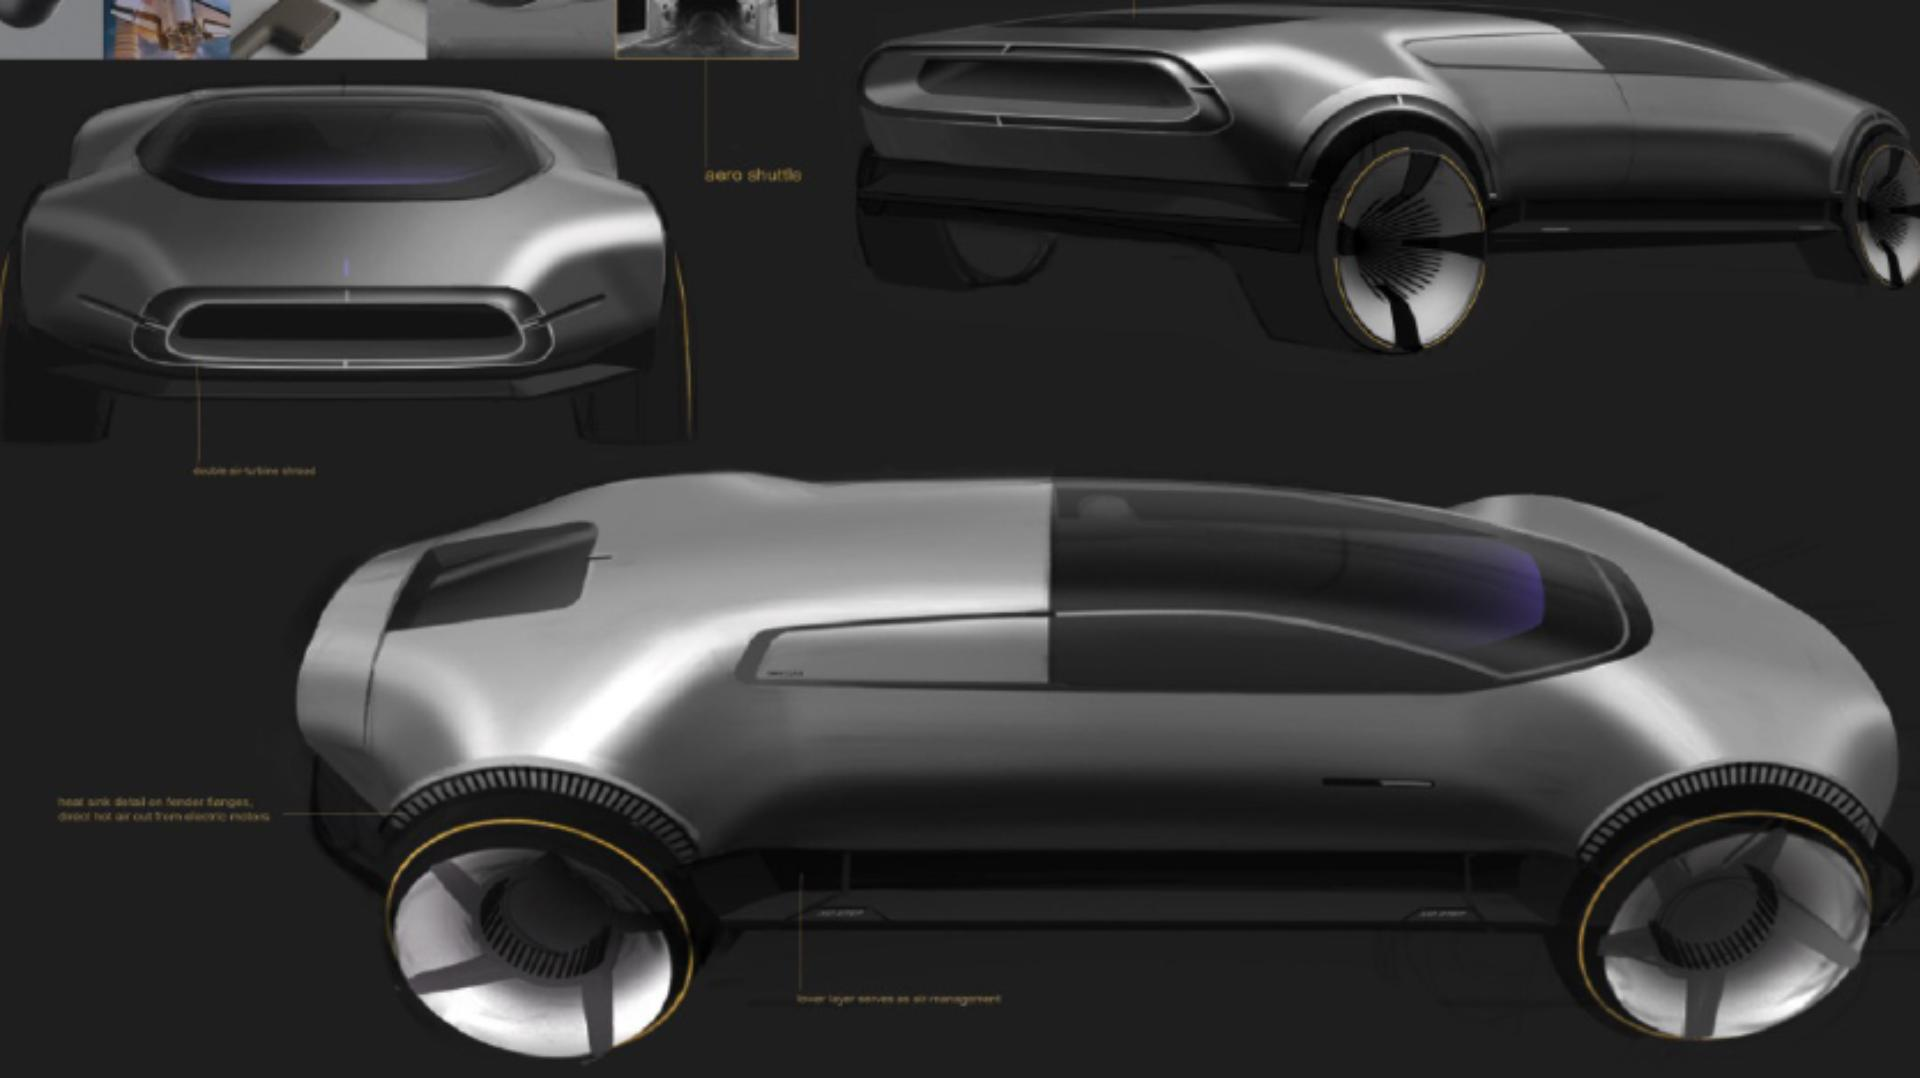 Concept drawings of the Dyson car